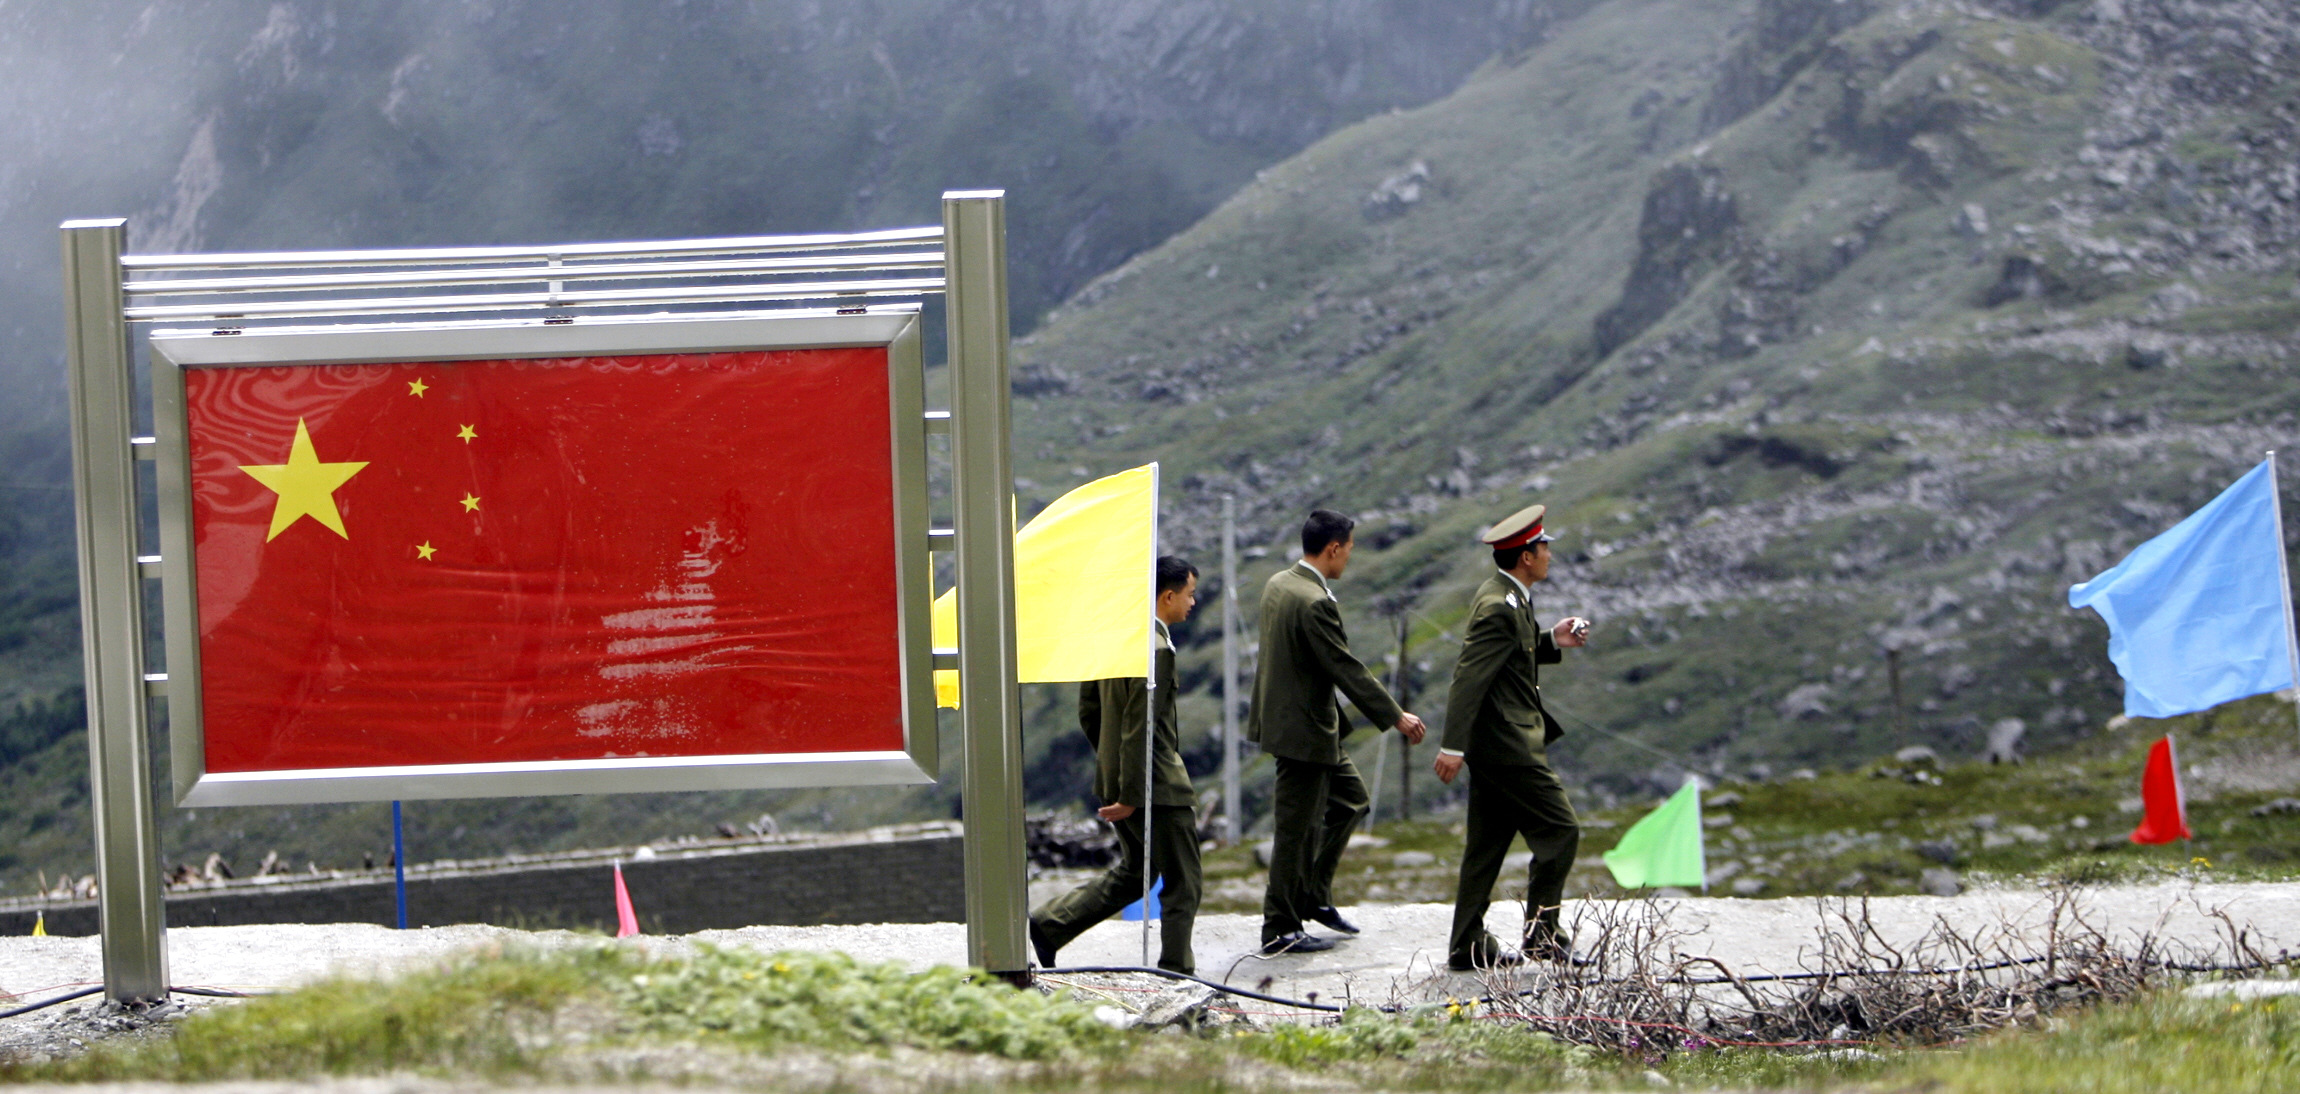 India and China share a disputed border over which they have fought a war and have periodic standoffs. (Credit: Deshakalyan Chowdhury / AFP)